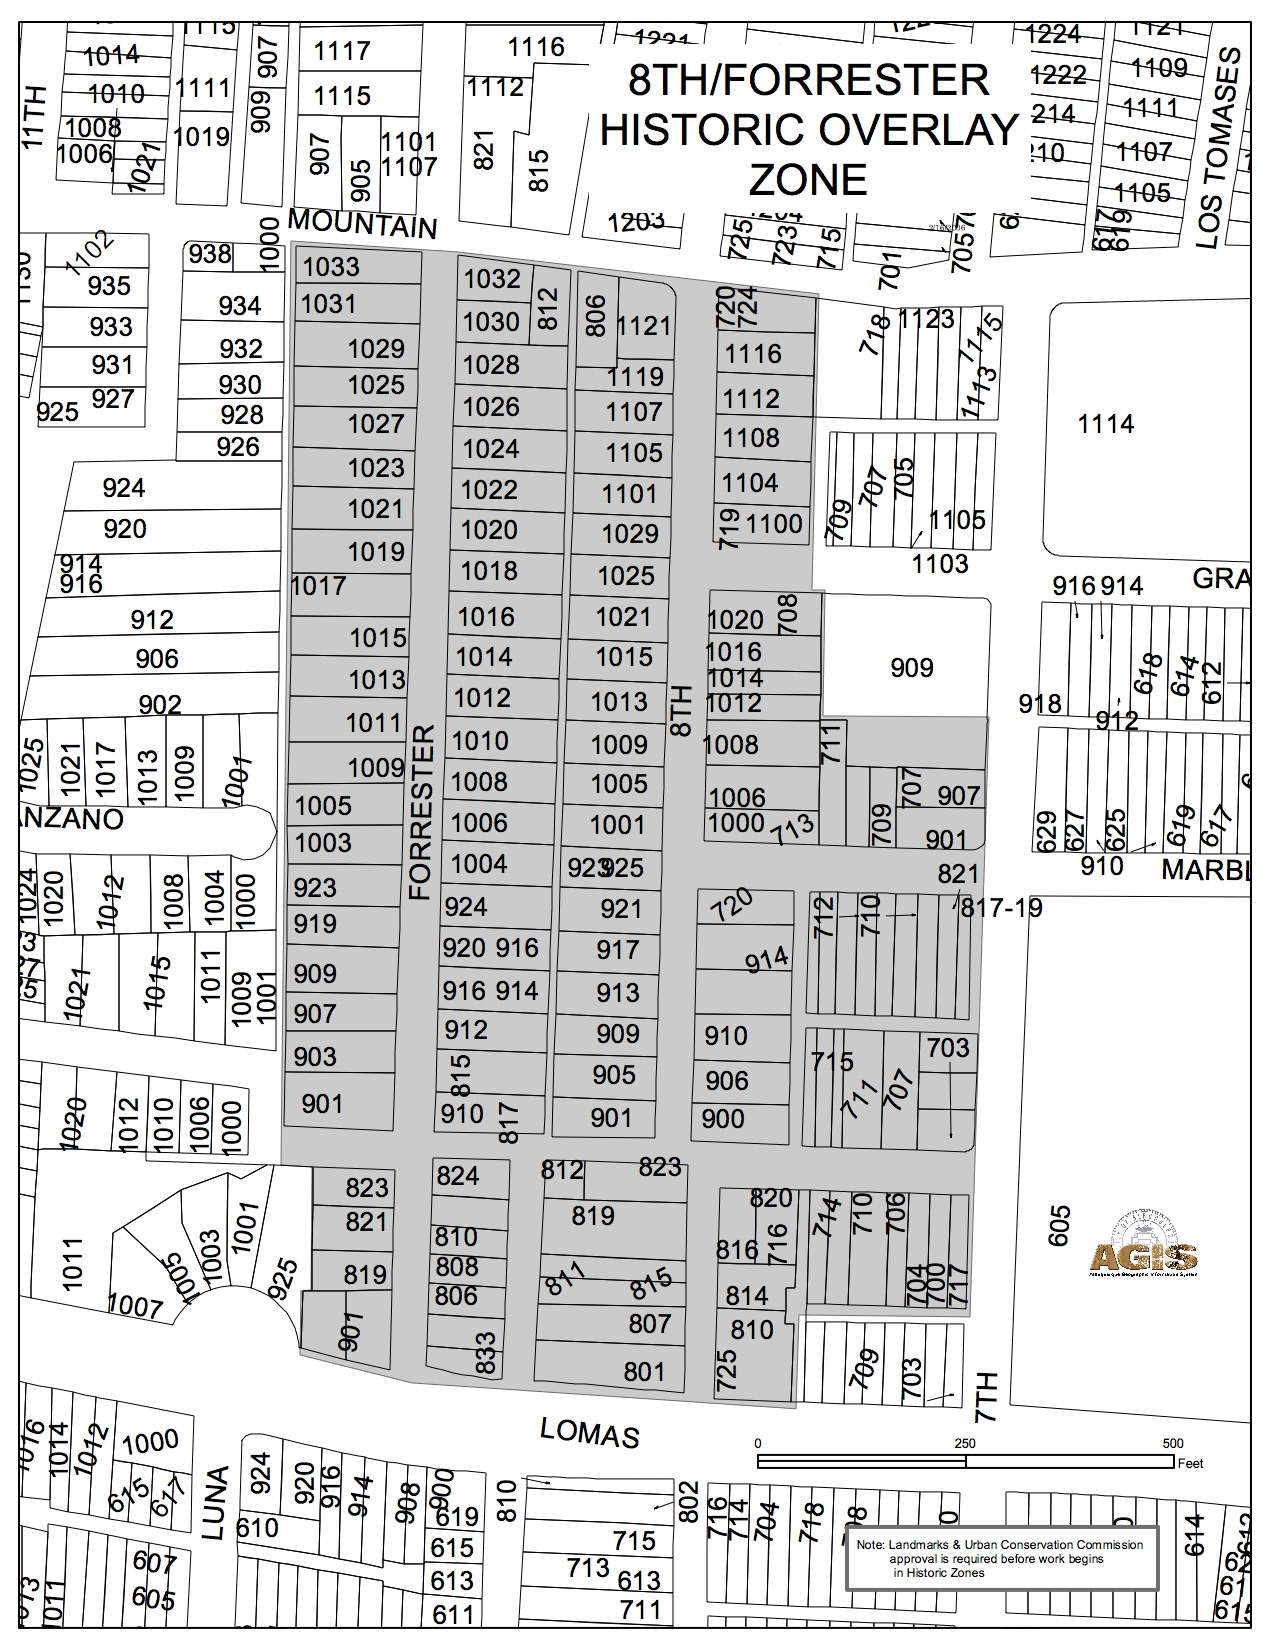 Historic Zone Map Eighth and Forrester